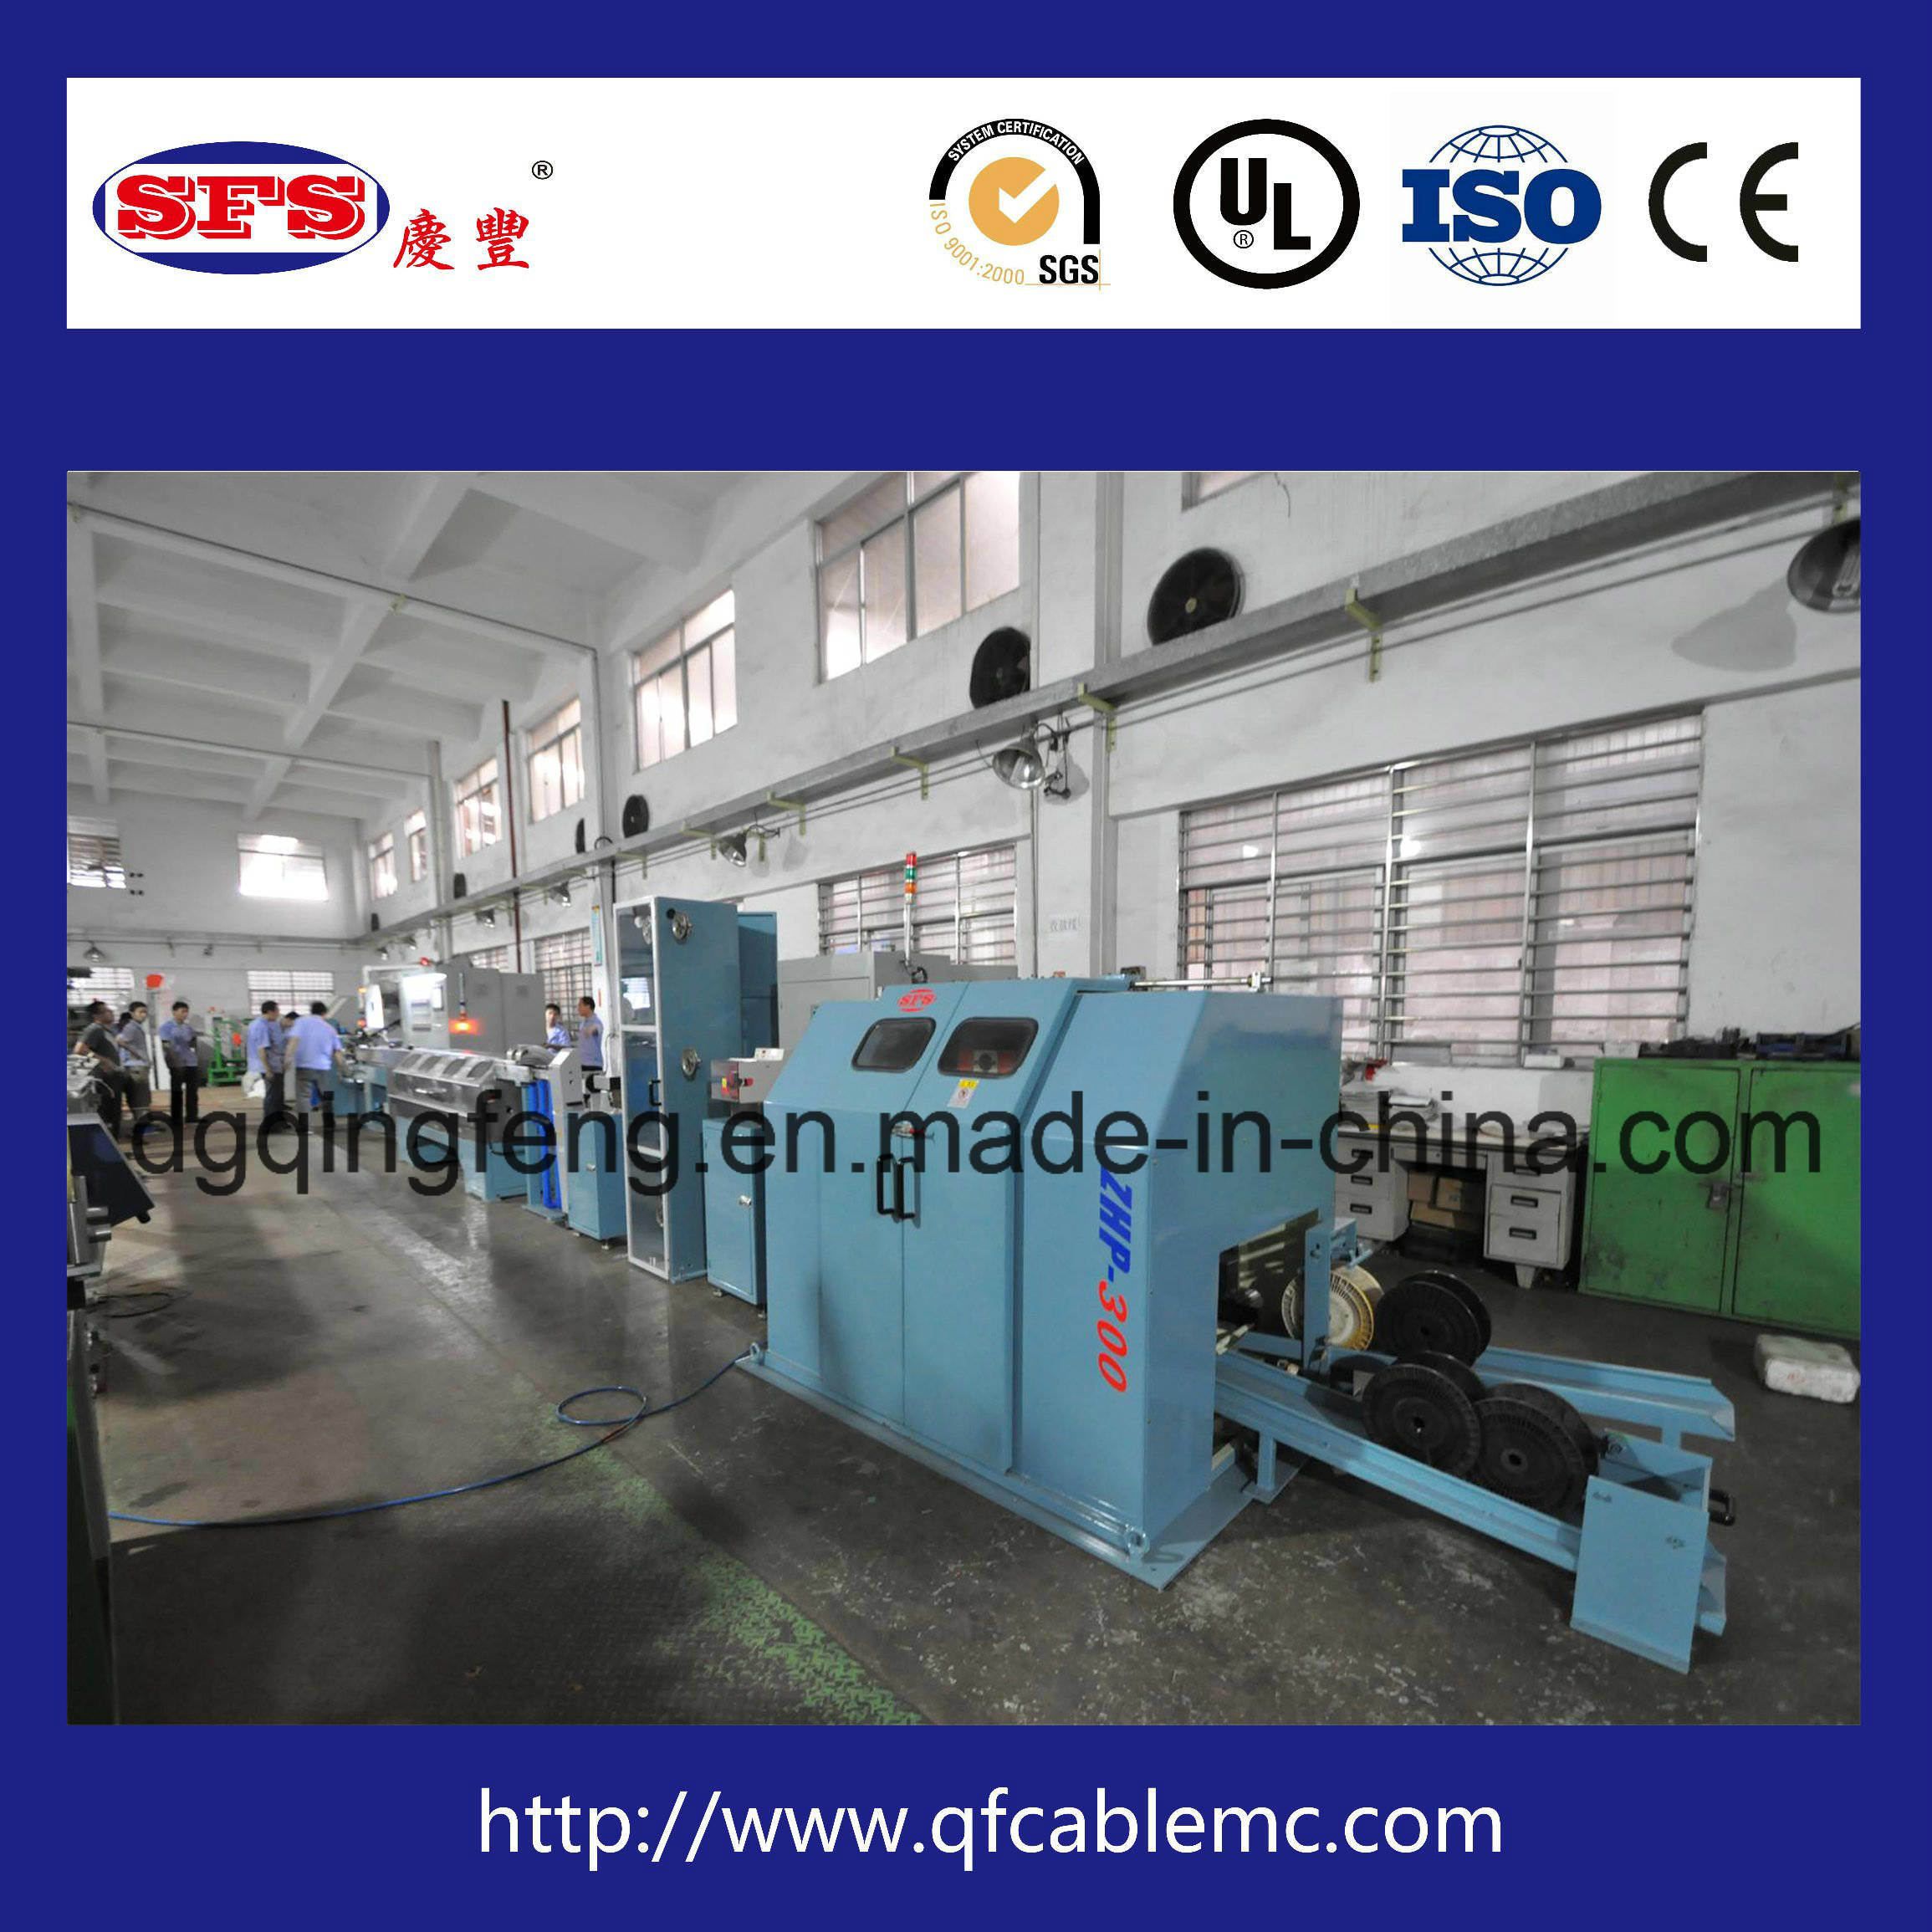 China High Pressure PE Physical Foam Coaxial Cable Extrusion Machine ...